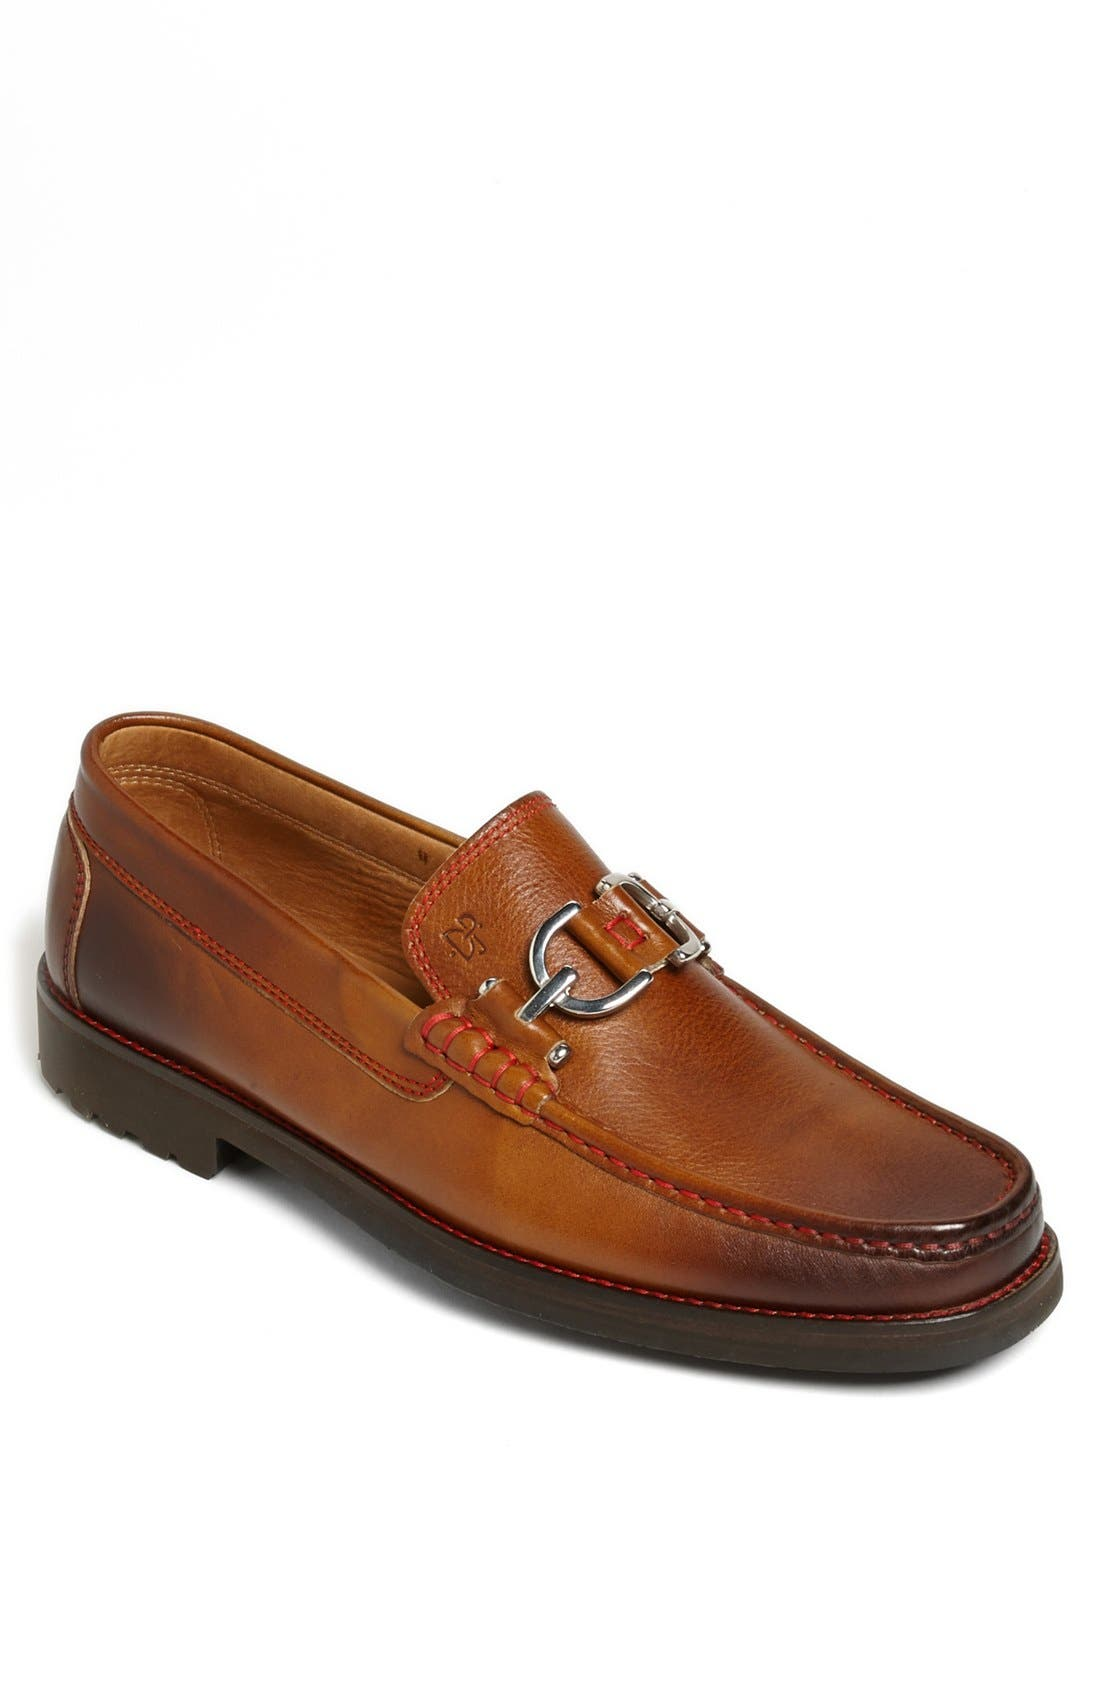 Main Image - Donald J Pliner 'Dustee' Bit Loafer